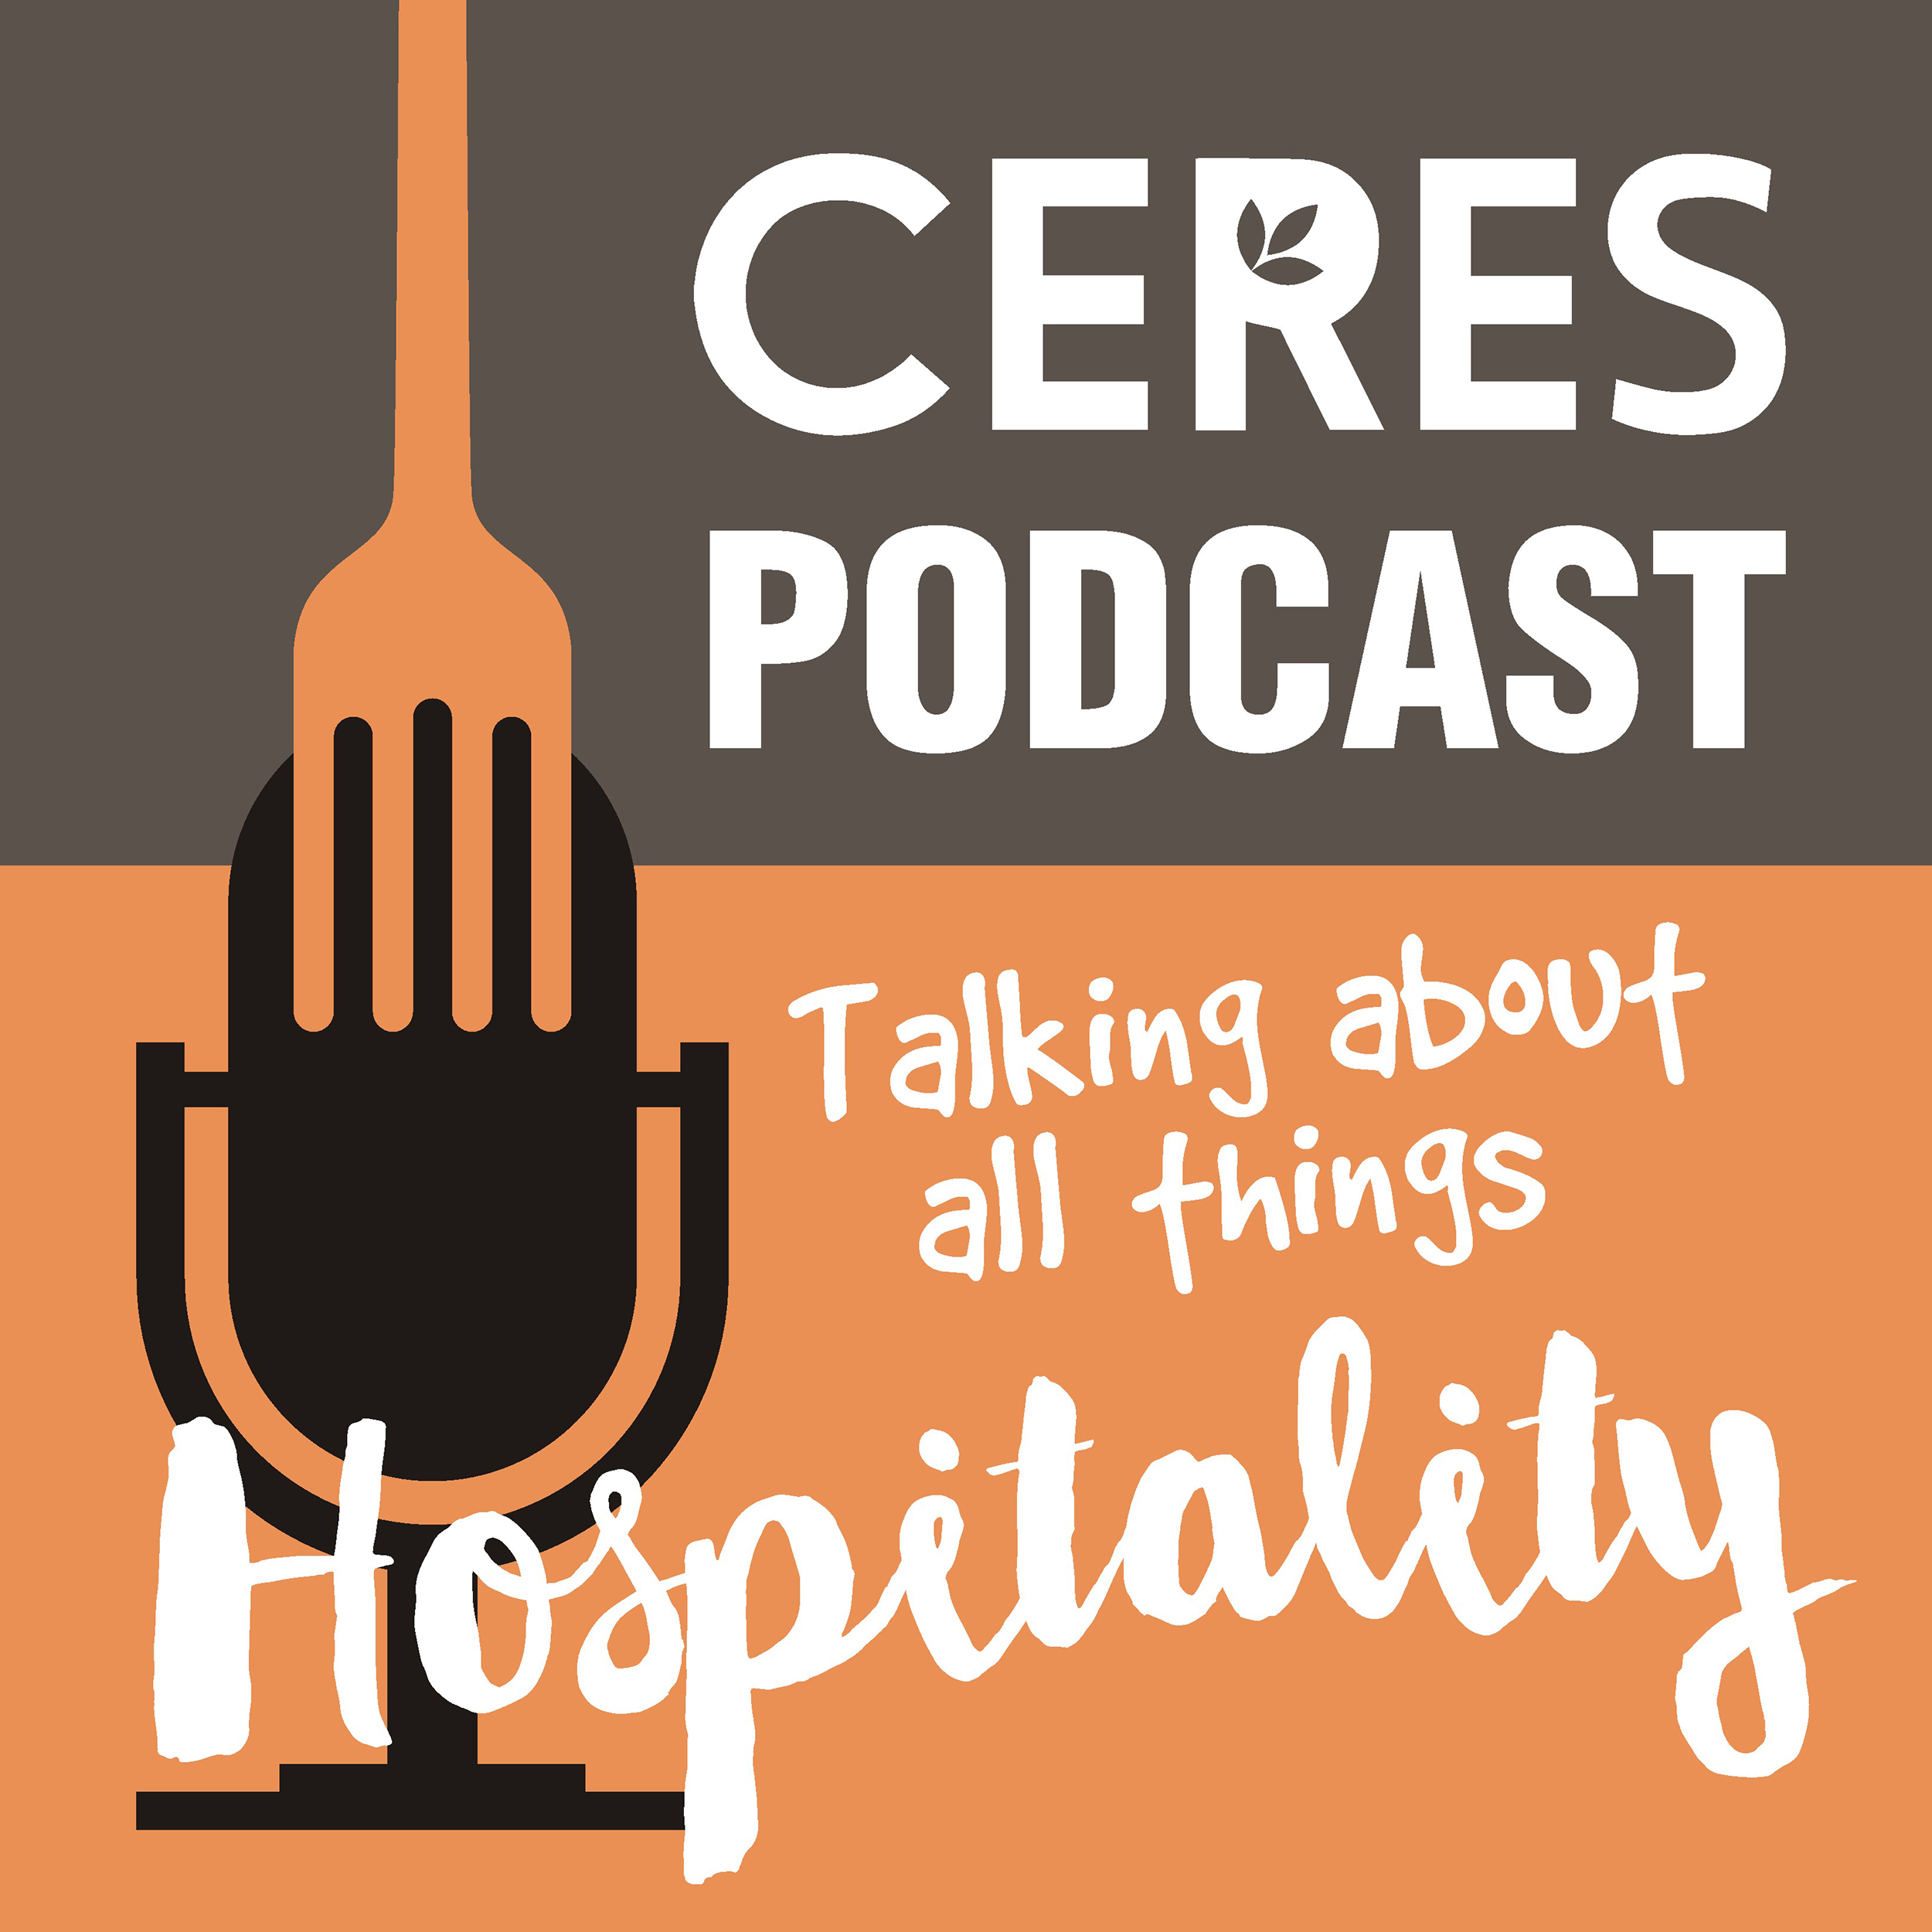 Ceres Podcast 100th Episode